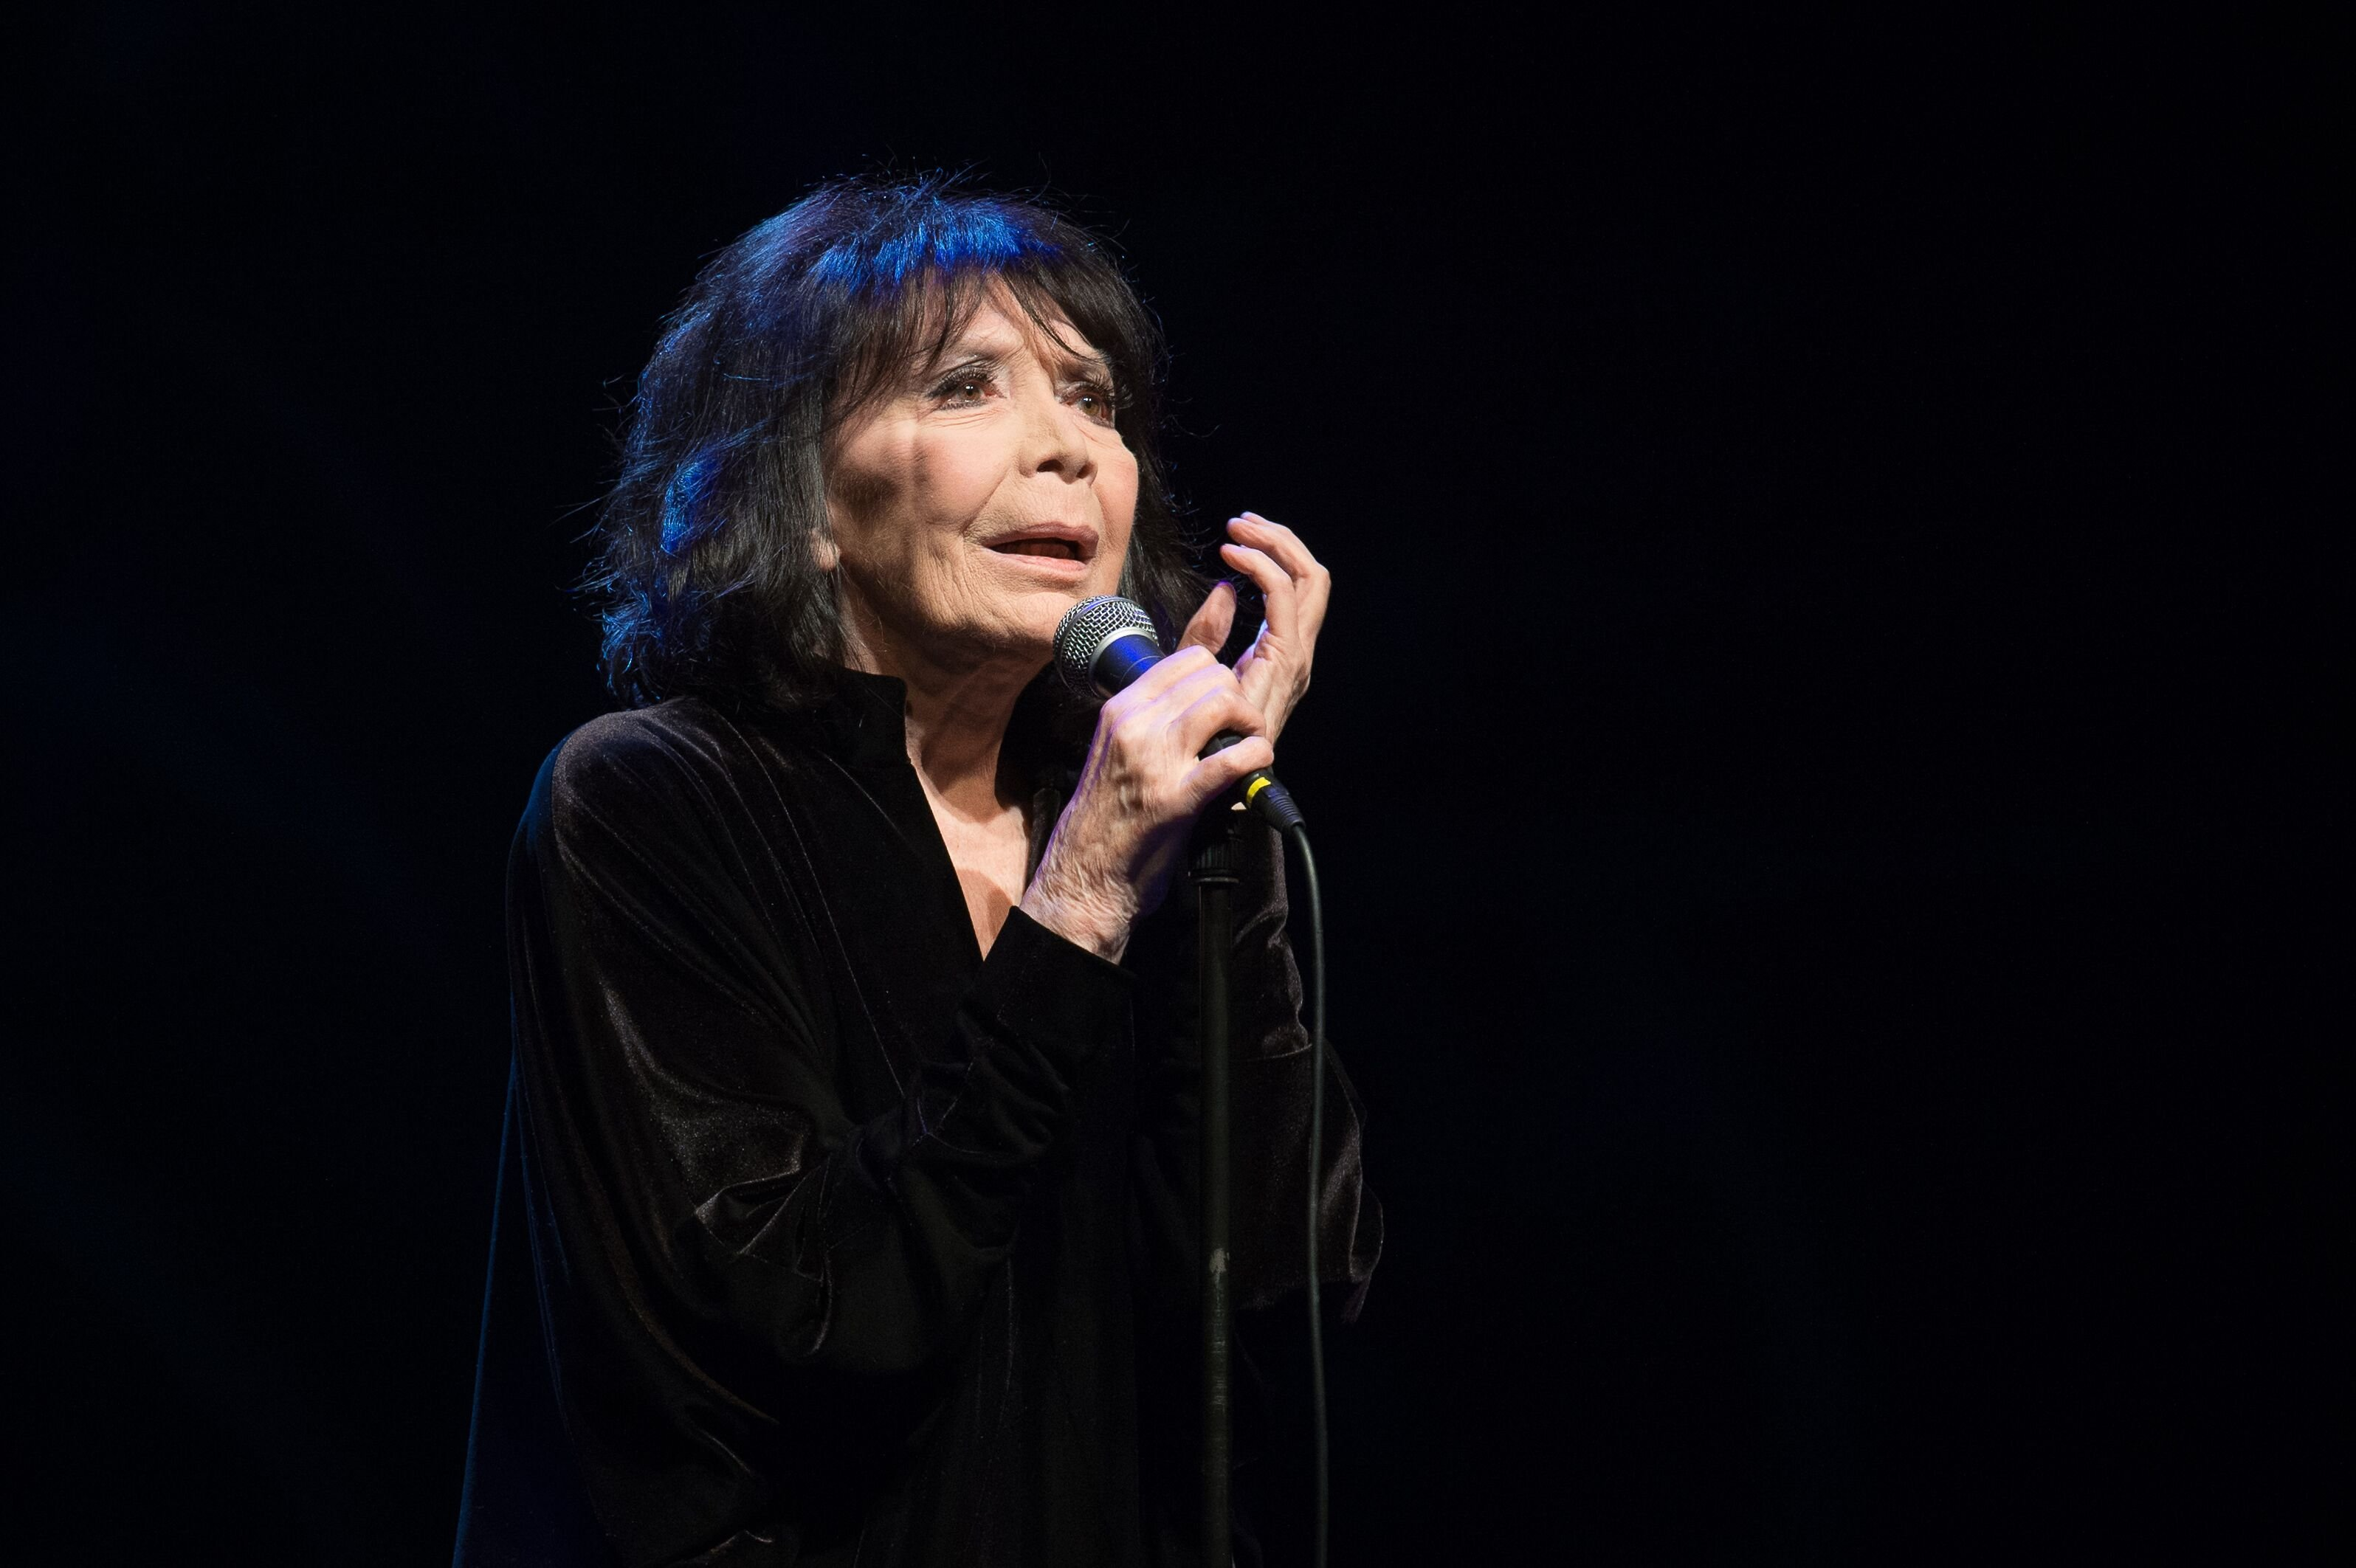 Juliette Greco se produit à La Cigale le 18 décembre 2015 à Paris, France. | Photo : Getty Images